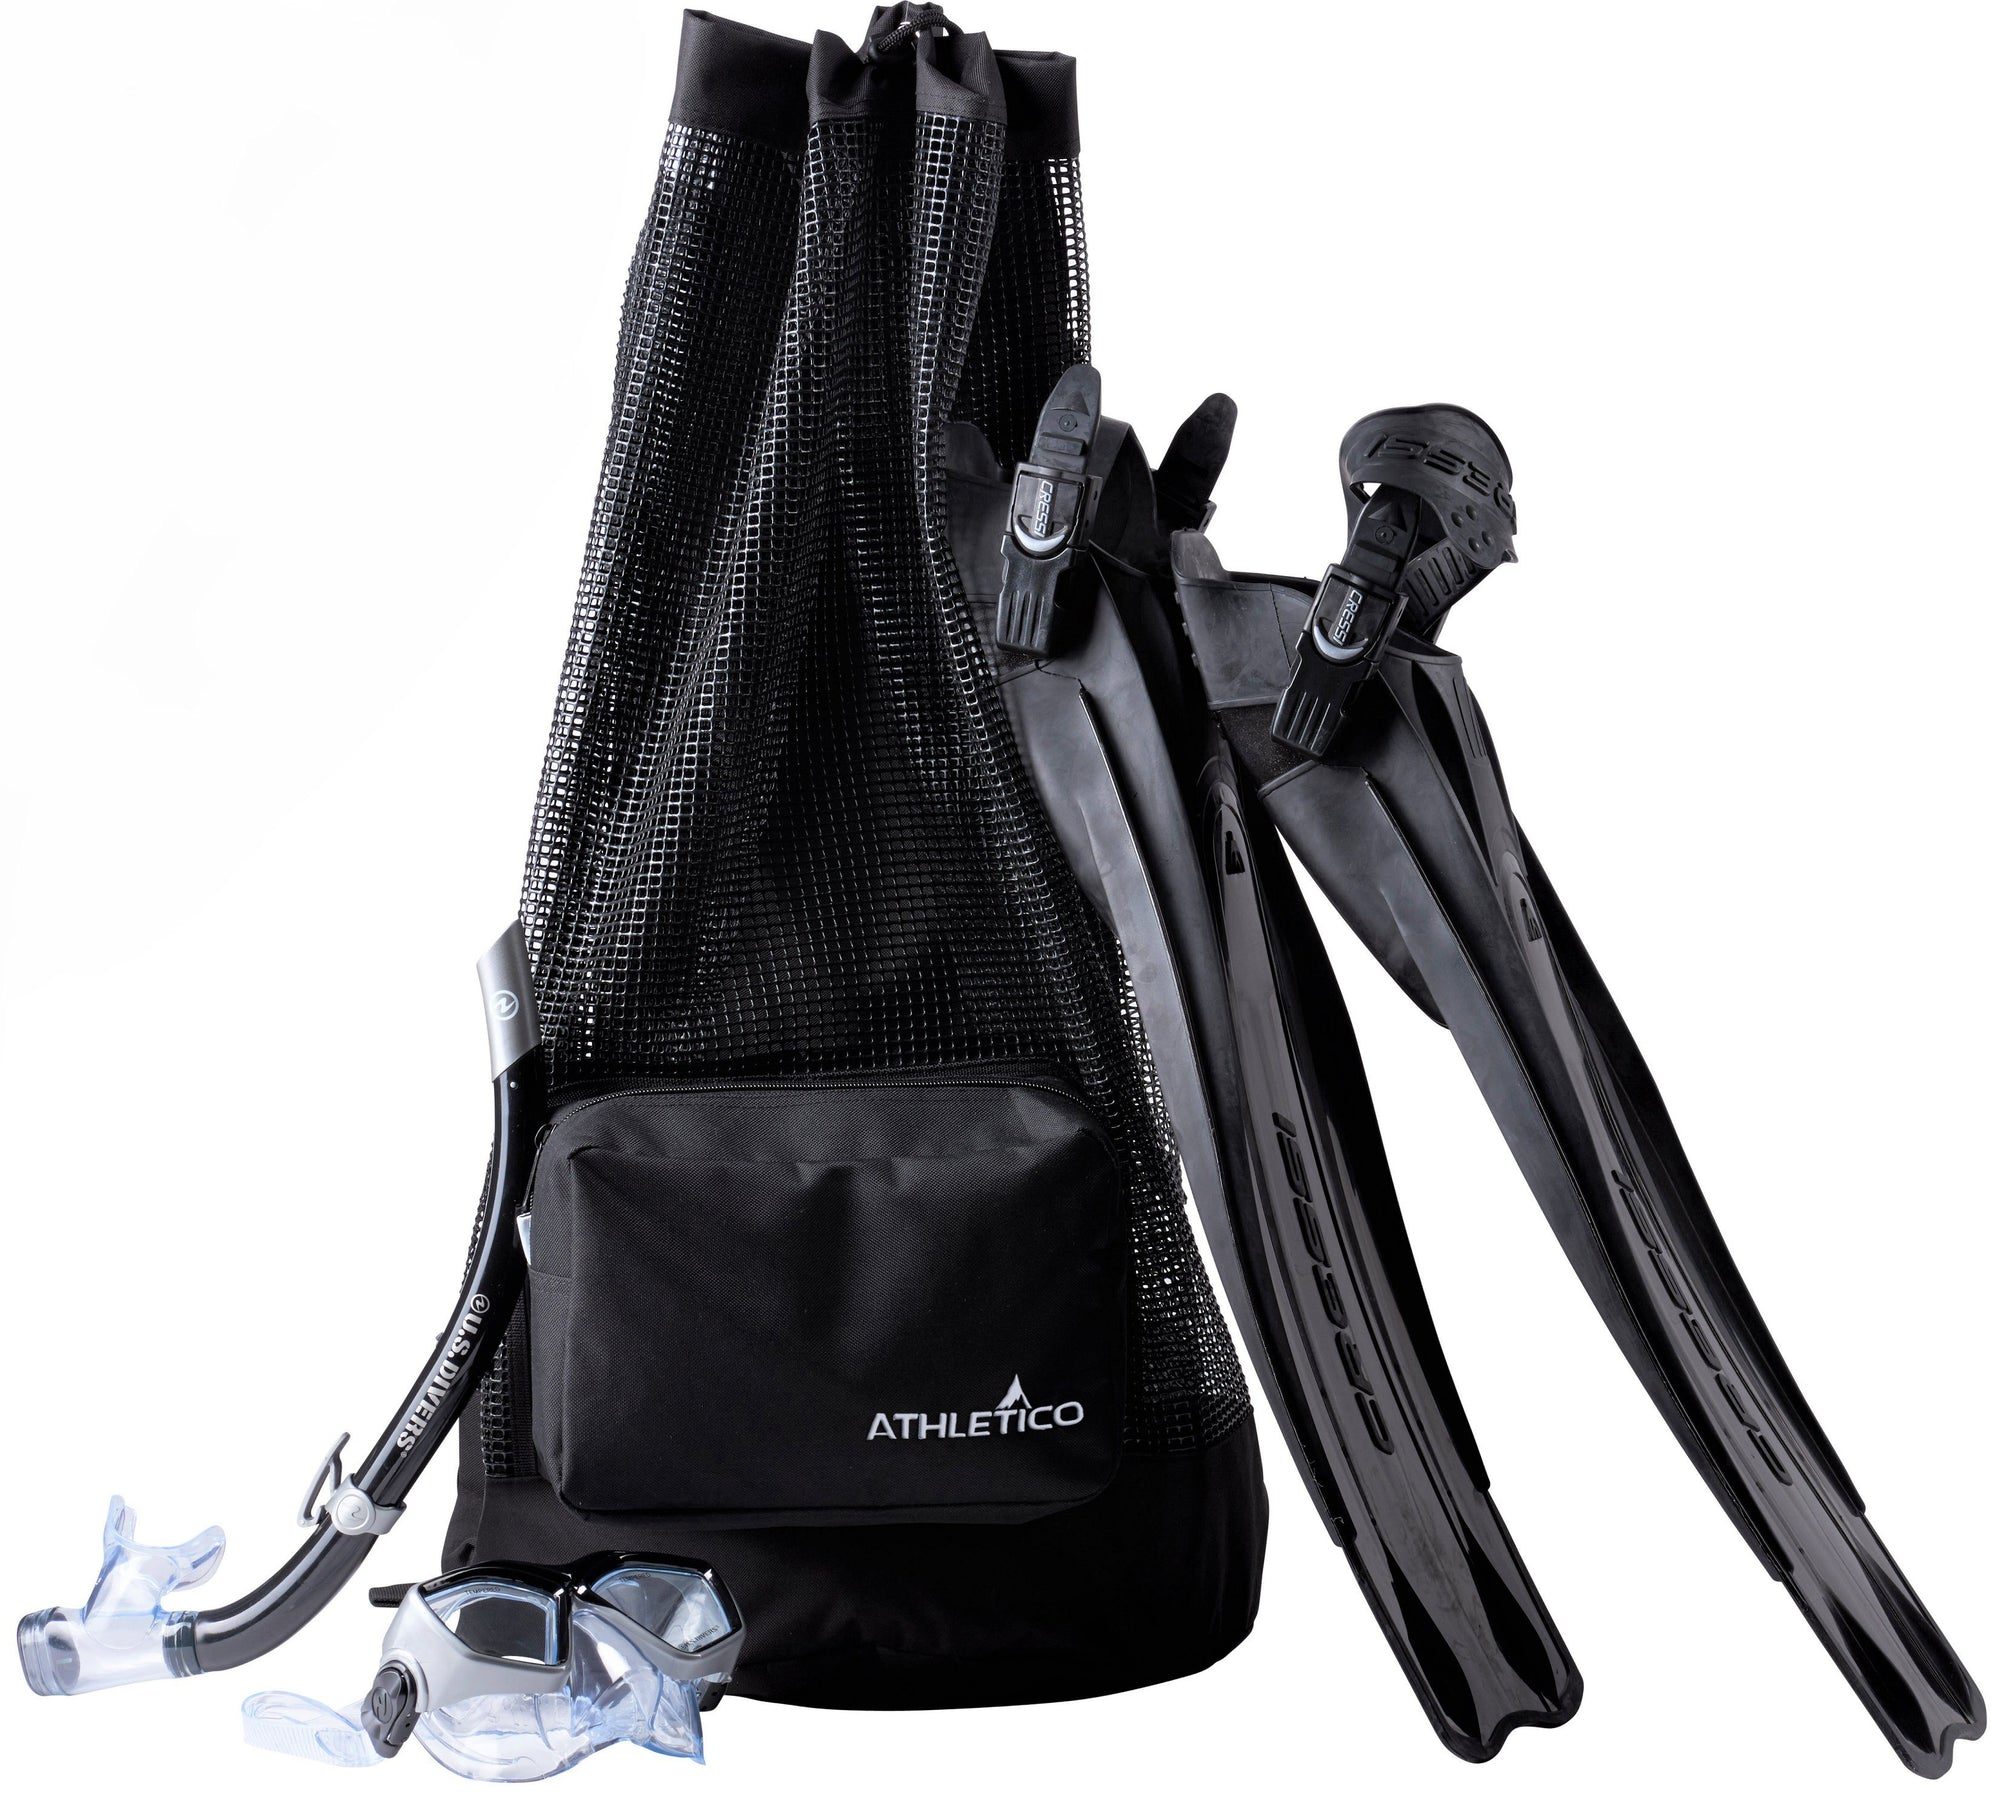 Athletico Scuba Diving Backpack - Athletico